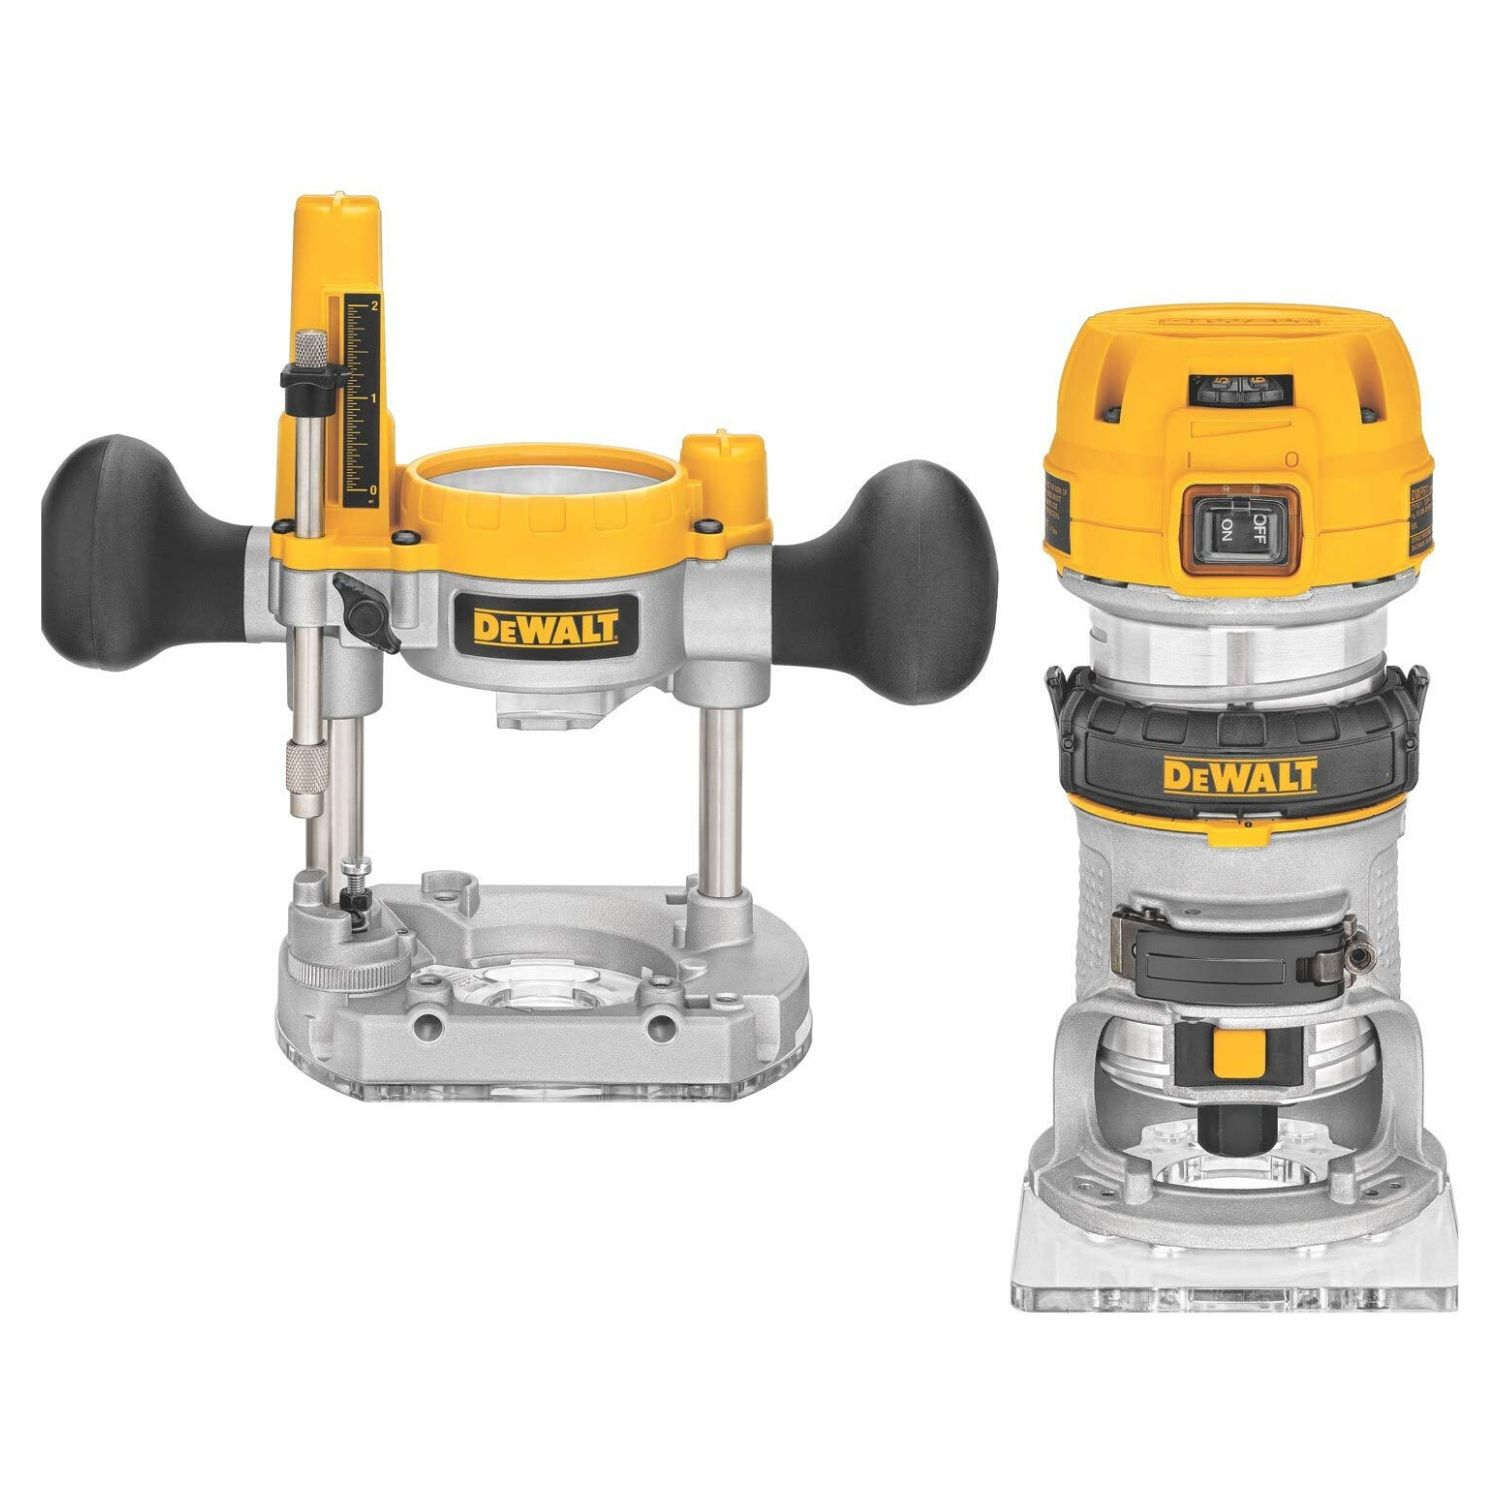 DEWALT Router Fixed Plunge Base Kit, Variable Speed router